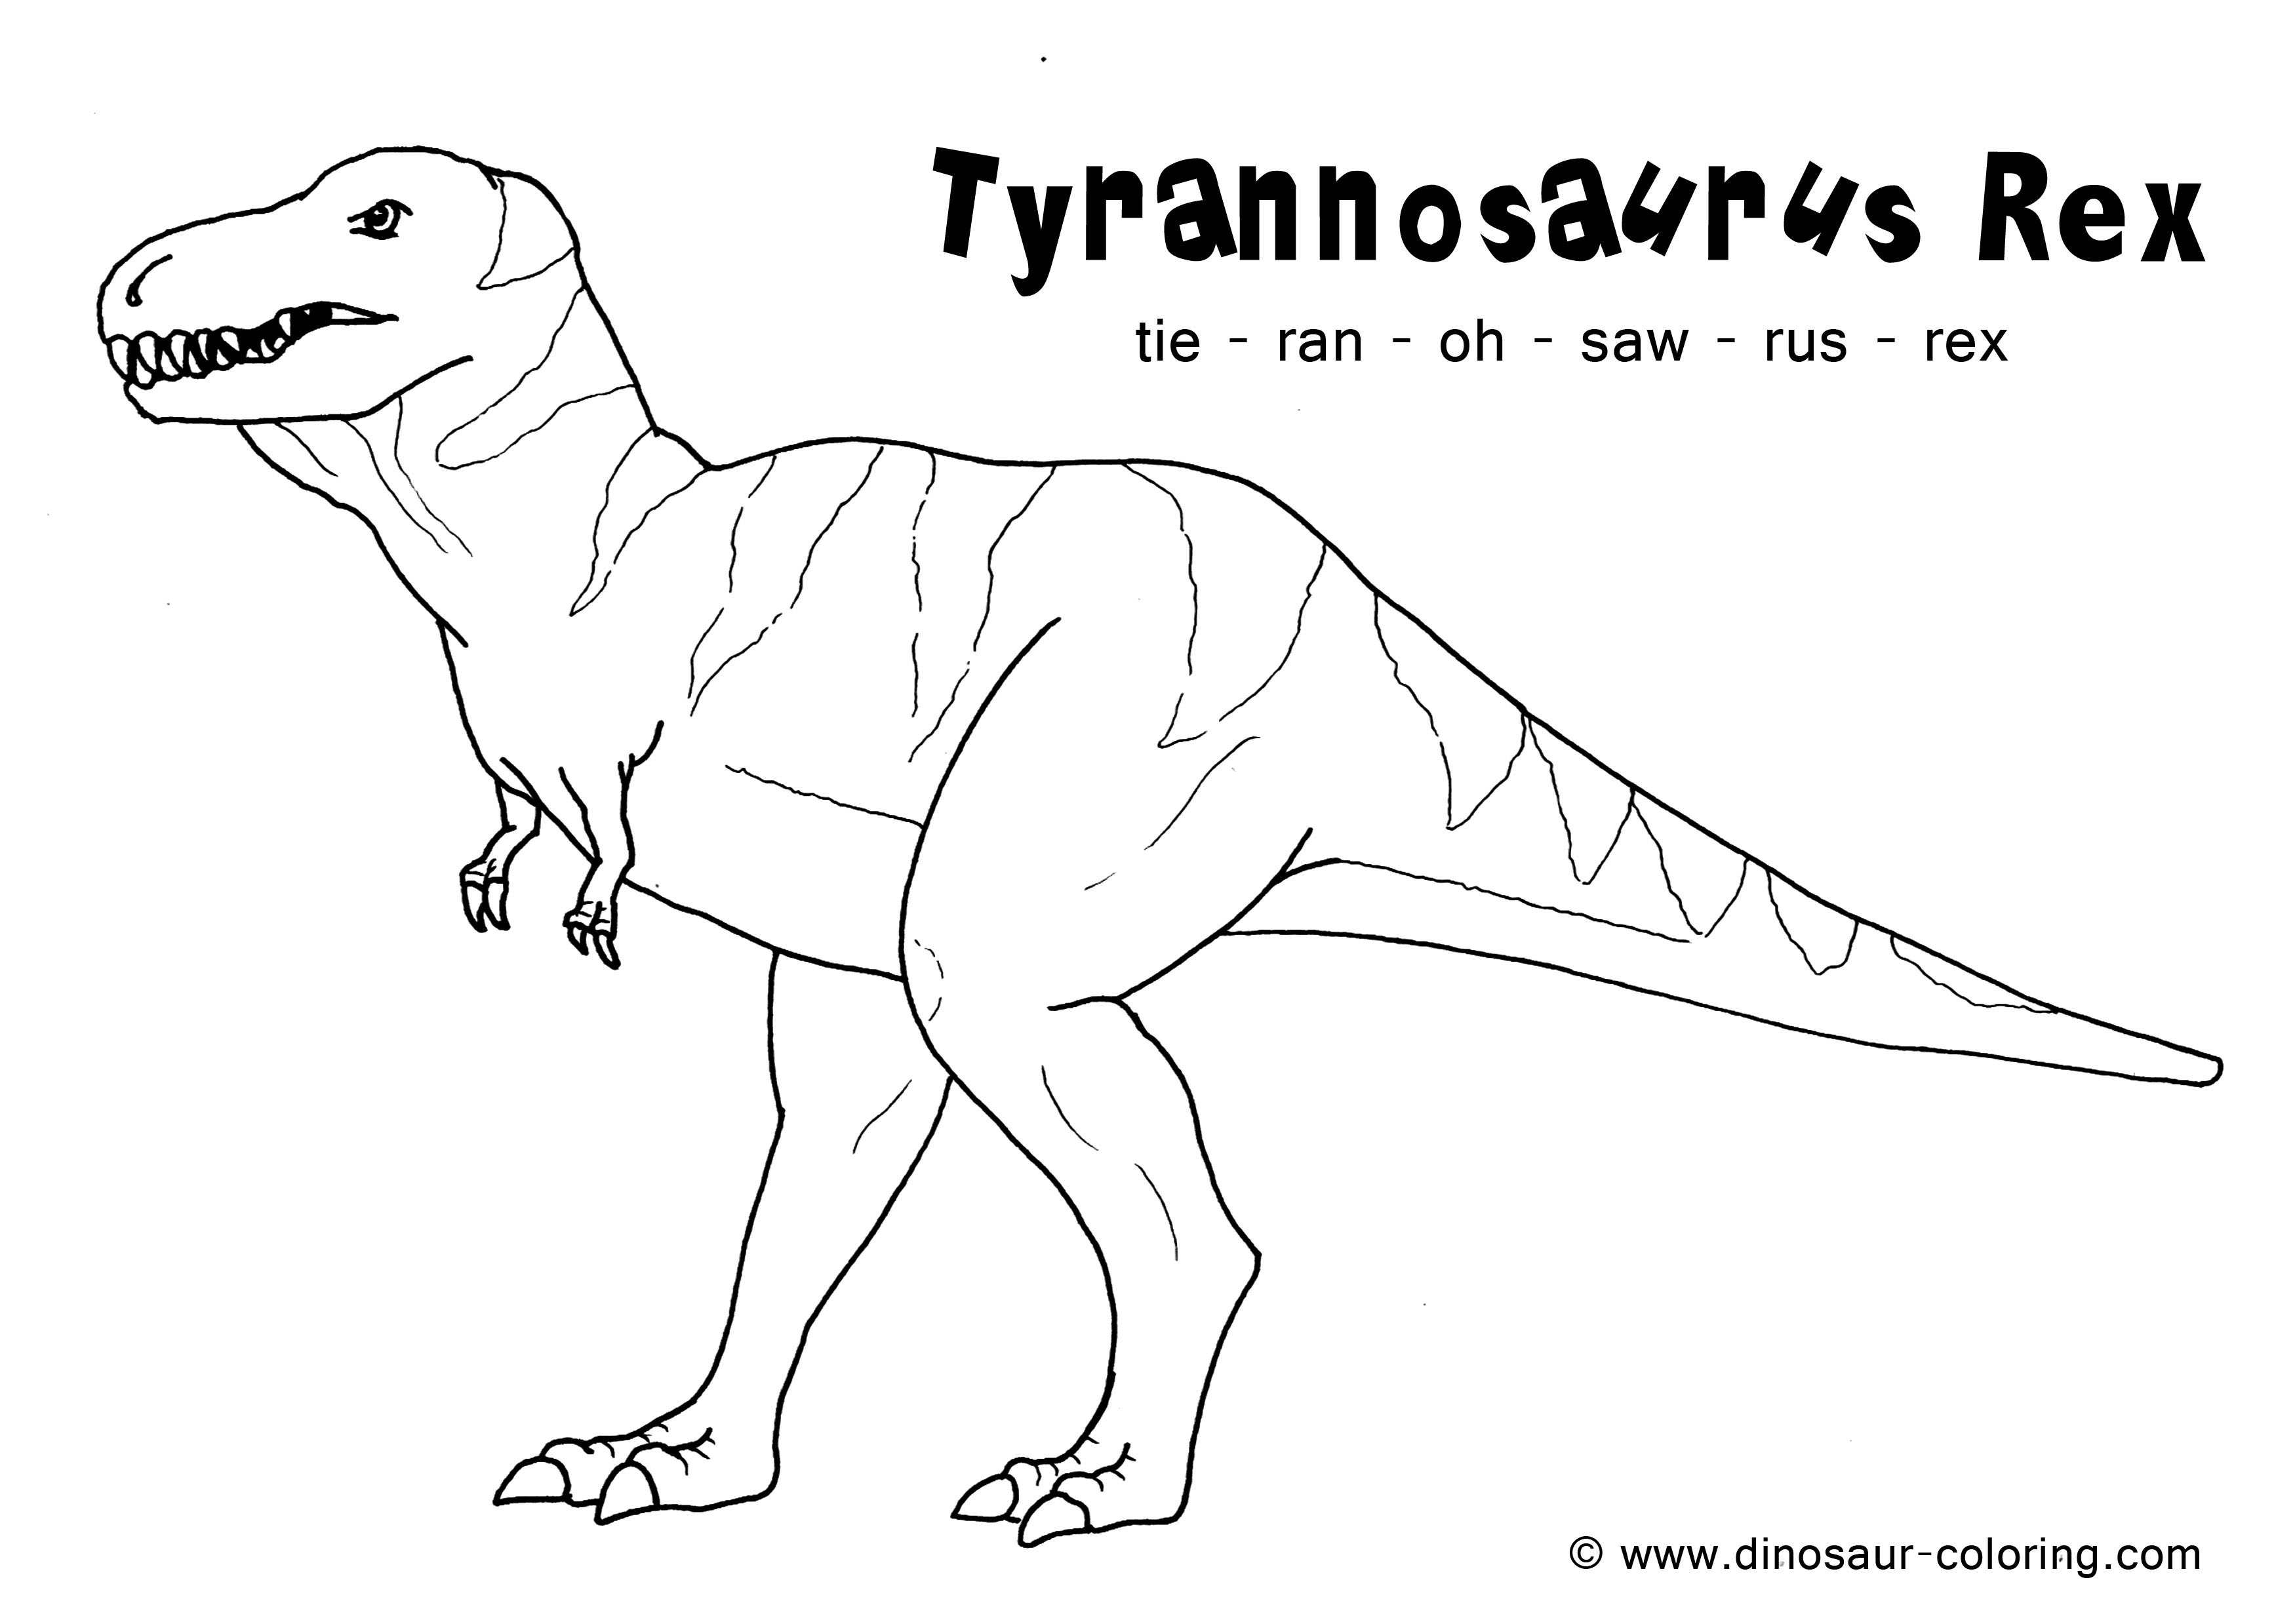 trex coloring sheets - Hobit.fullring.co